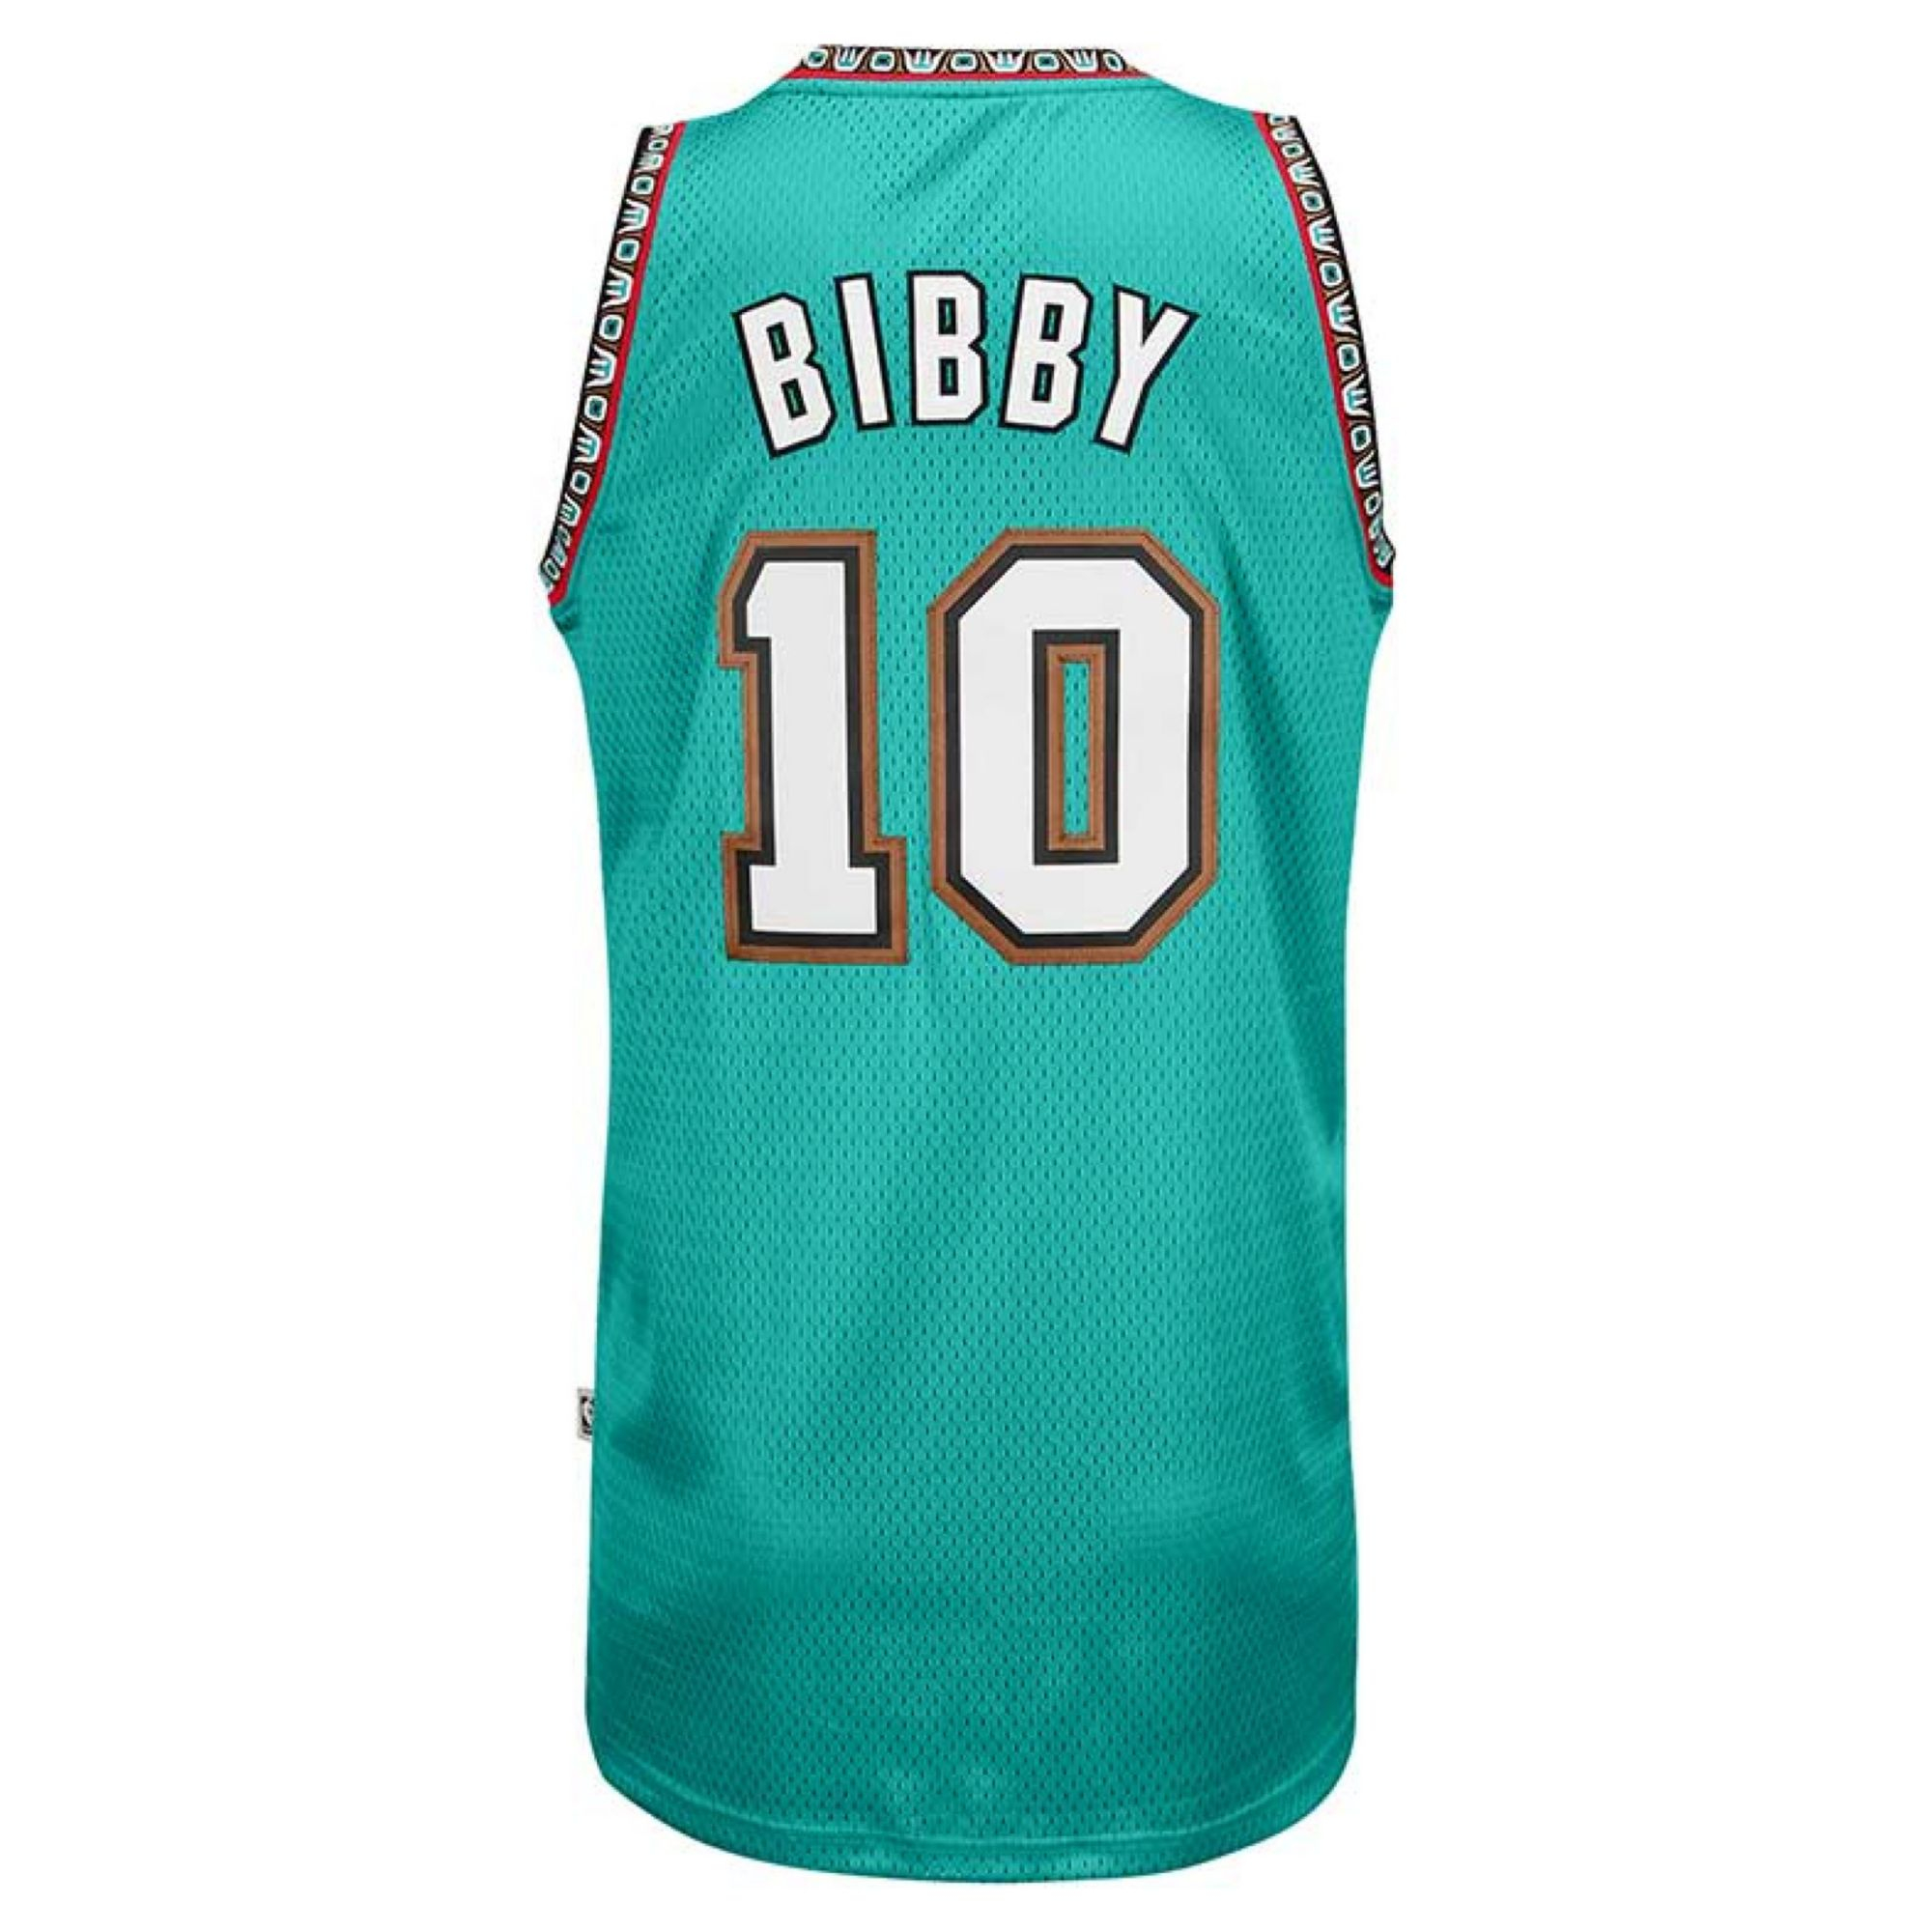 f5e64e8d5c36 adidas Mens Mike Bibby Vancouver Grizzlies Retired Player Swingman ...